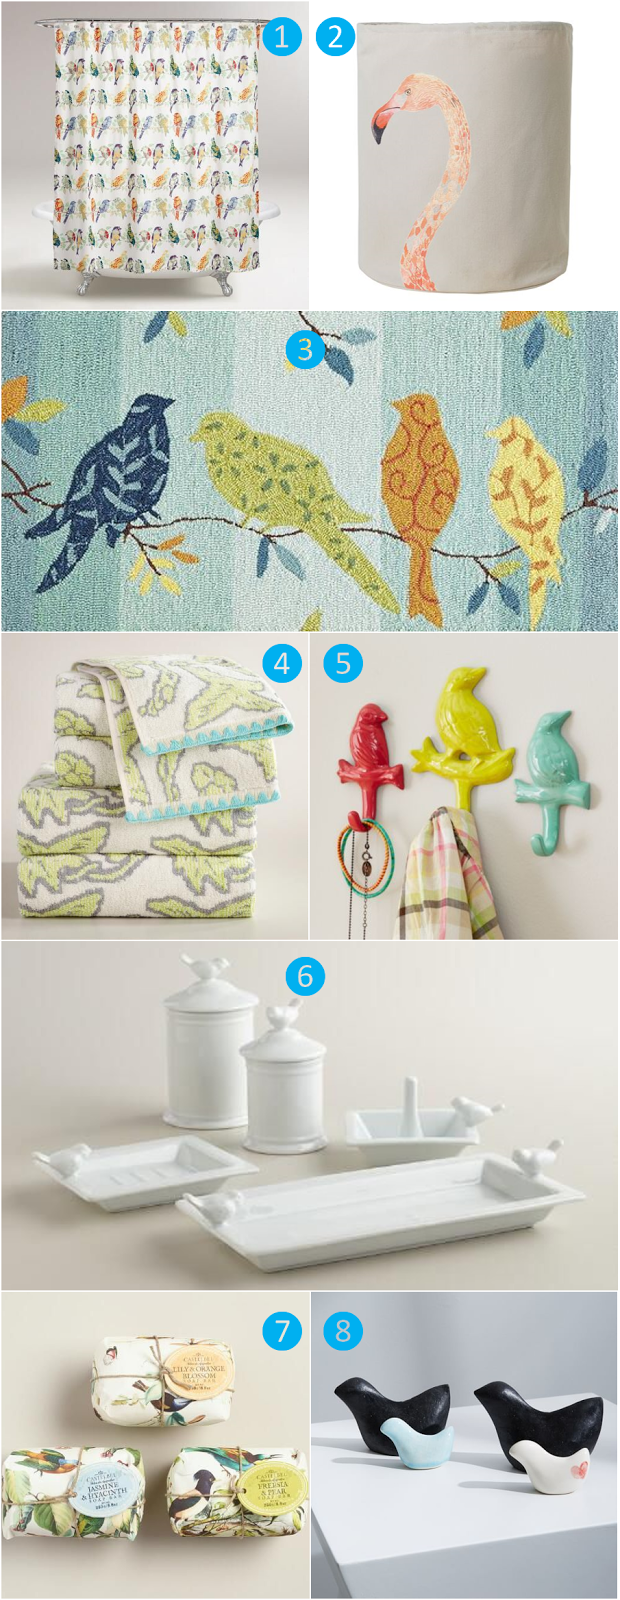 BoHo Home Feather Your Nest For Spring With Bird Themed Décor